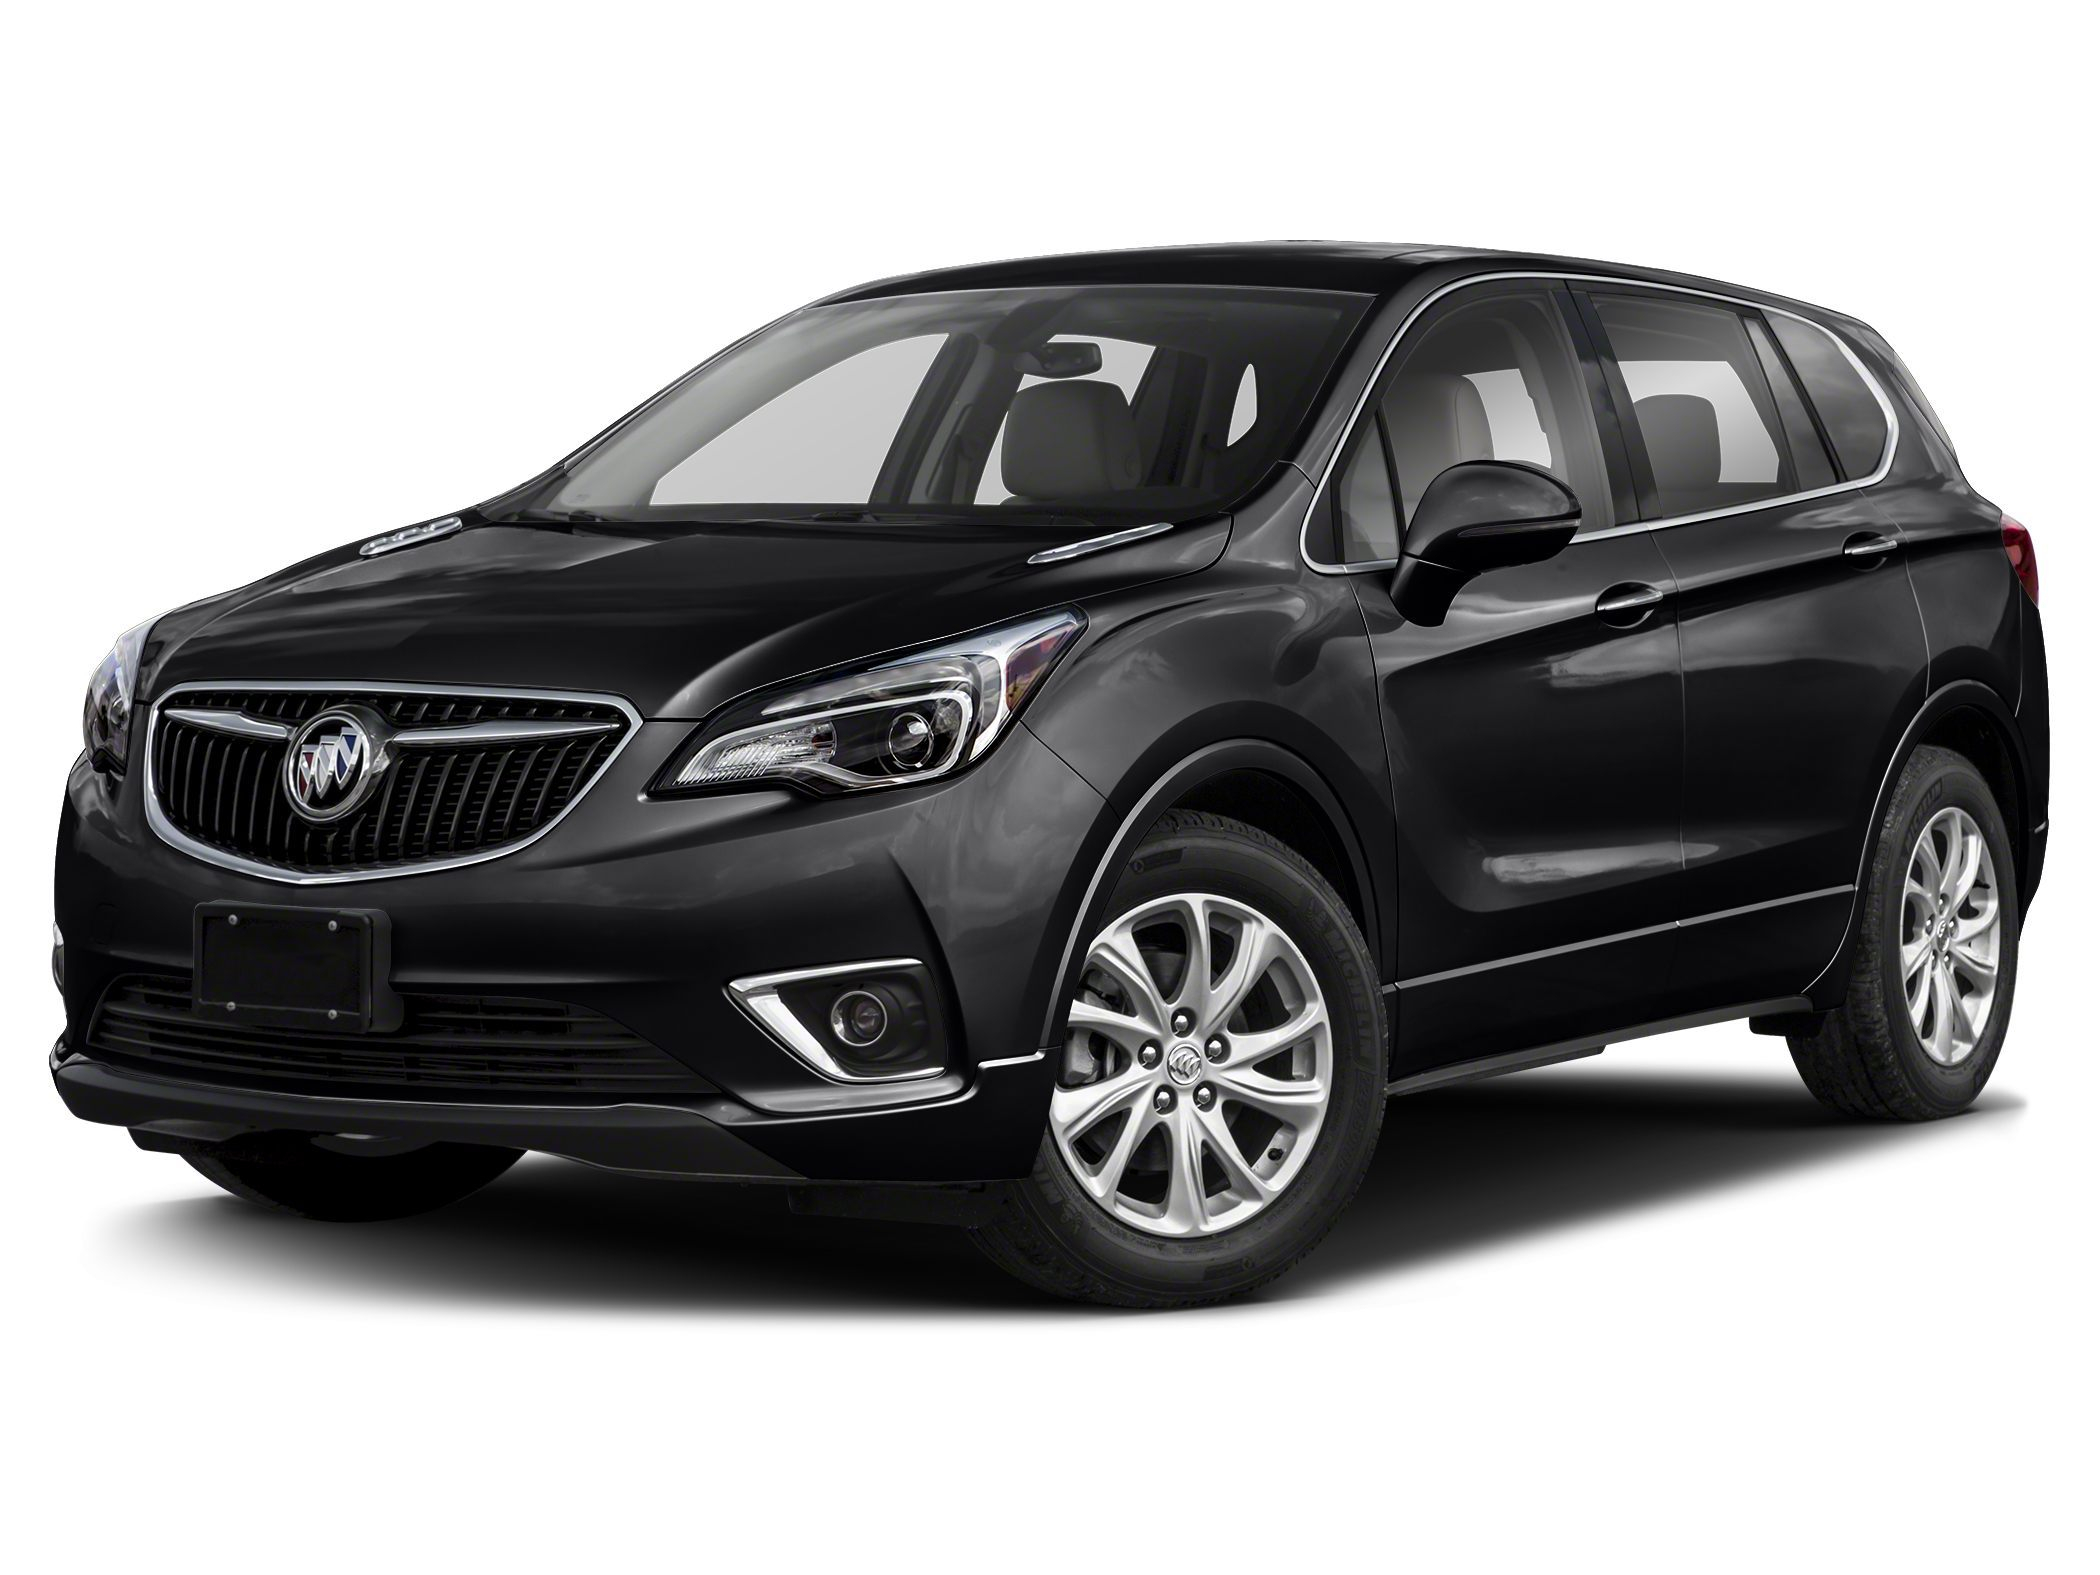 New 2020 Buick Envision For Sale | Mchenry Il | Also Serving New 2021 Buick Envision Owners Manual, Options, Oil Change